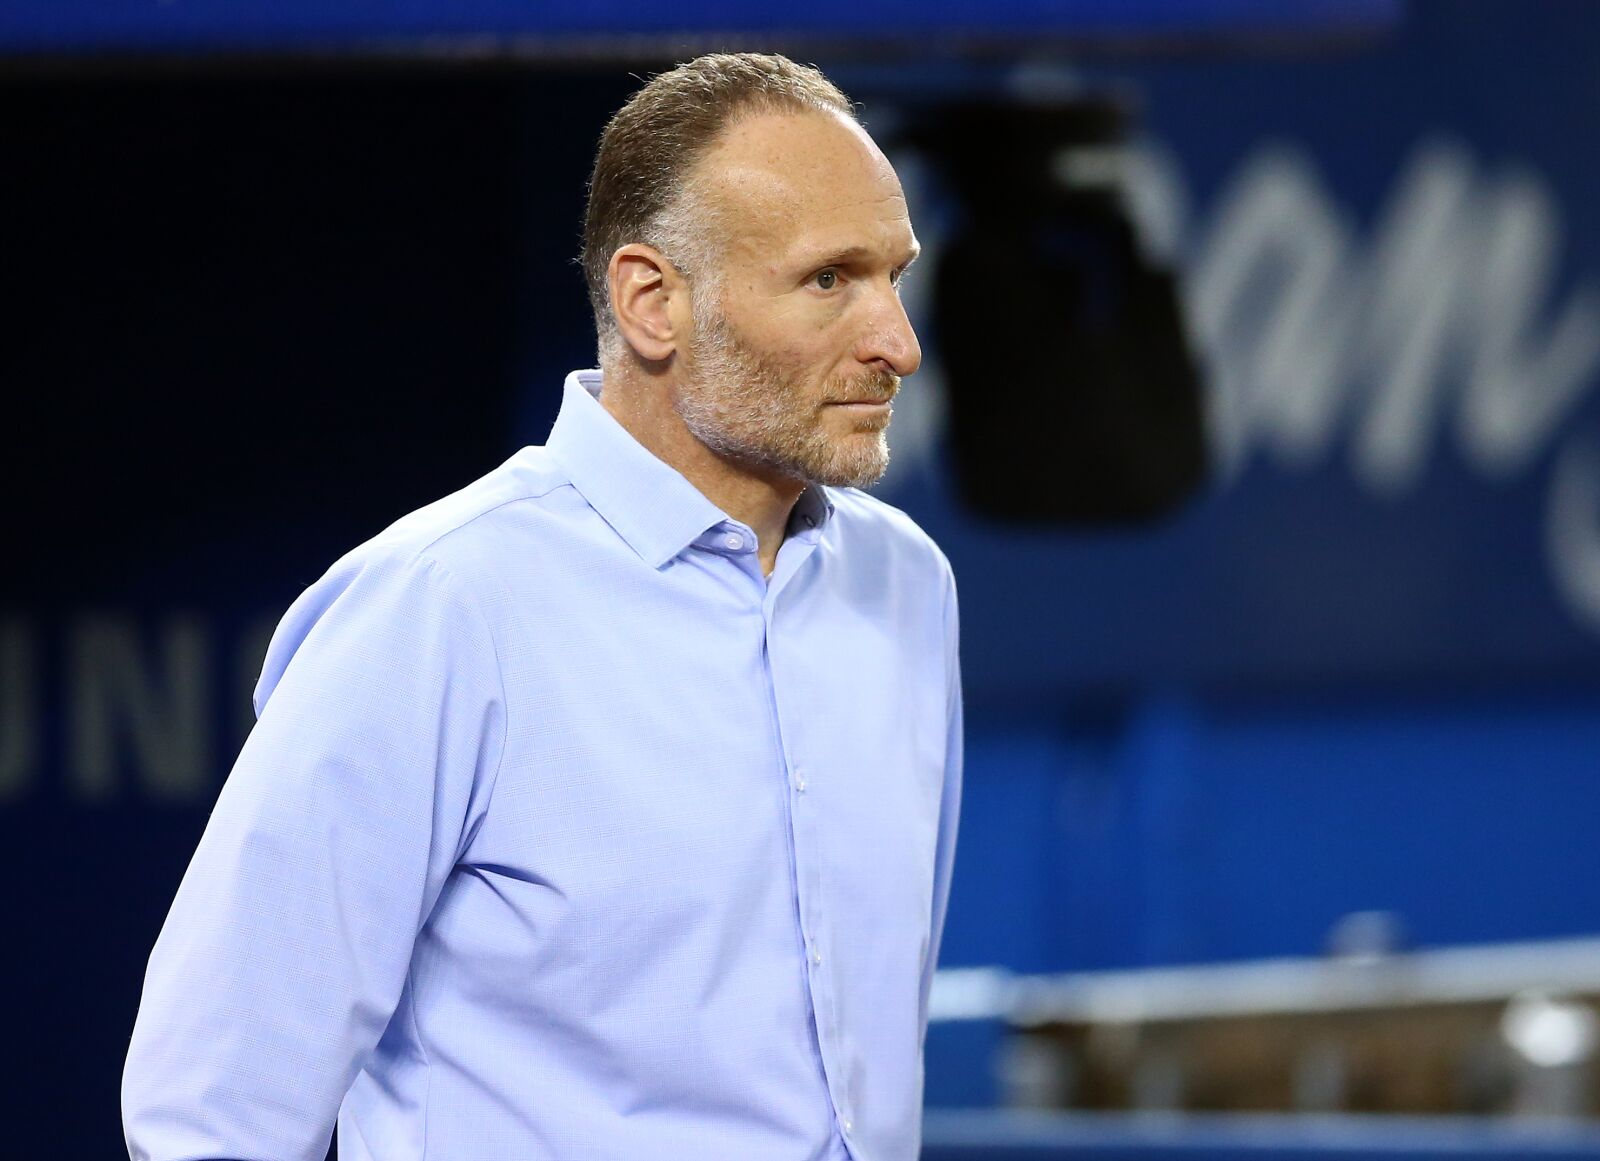 Toronto Blue Jays reportedly considering extension for Mark Shapiro